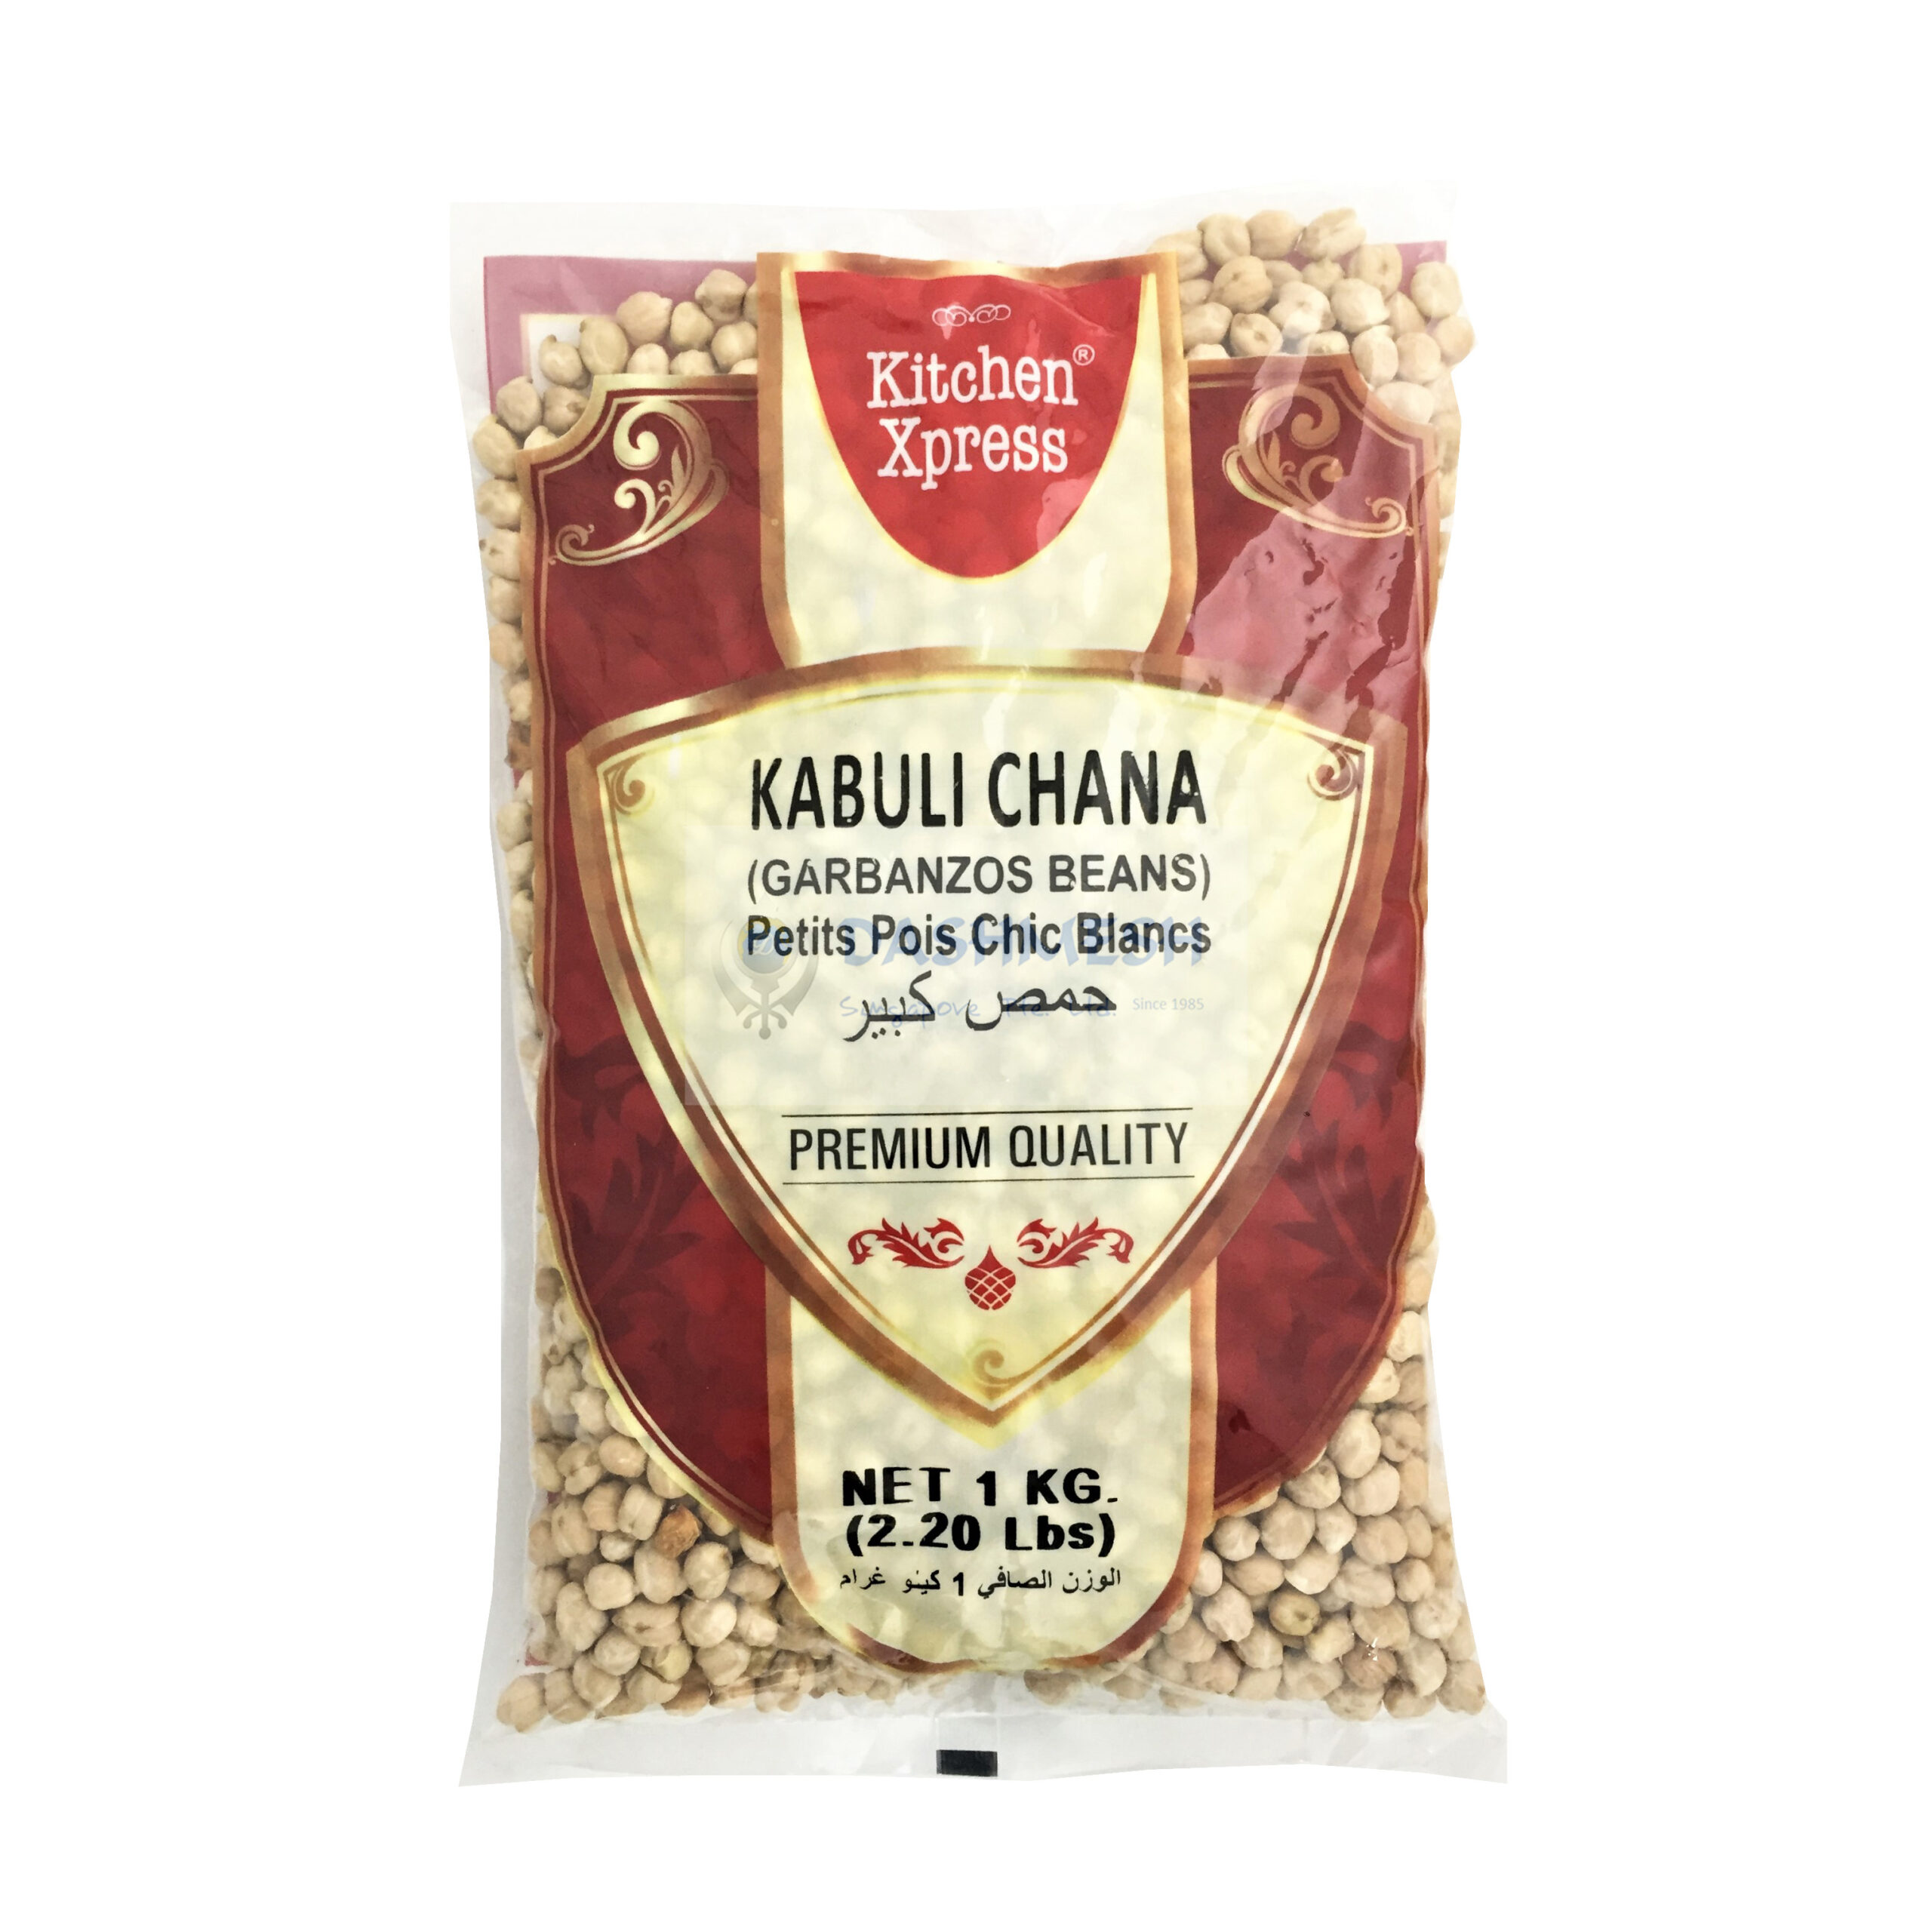 Kitchen Xpress Kabuli Chana 500g, 1Kg & 5Kg